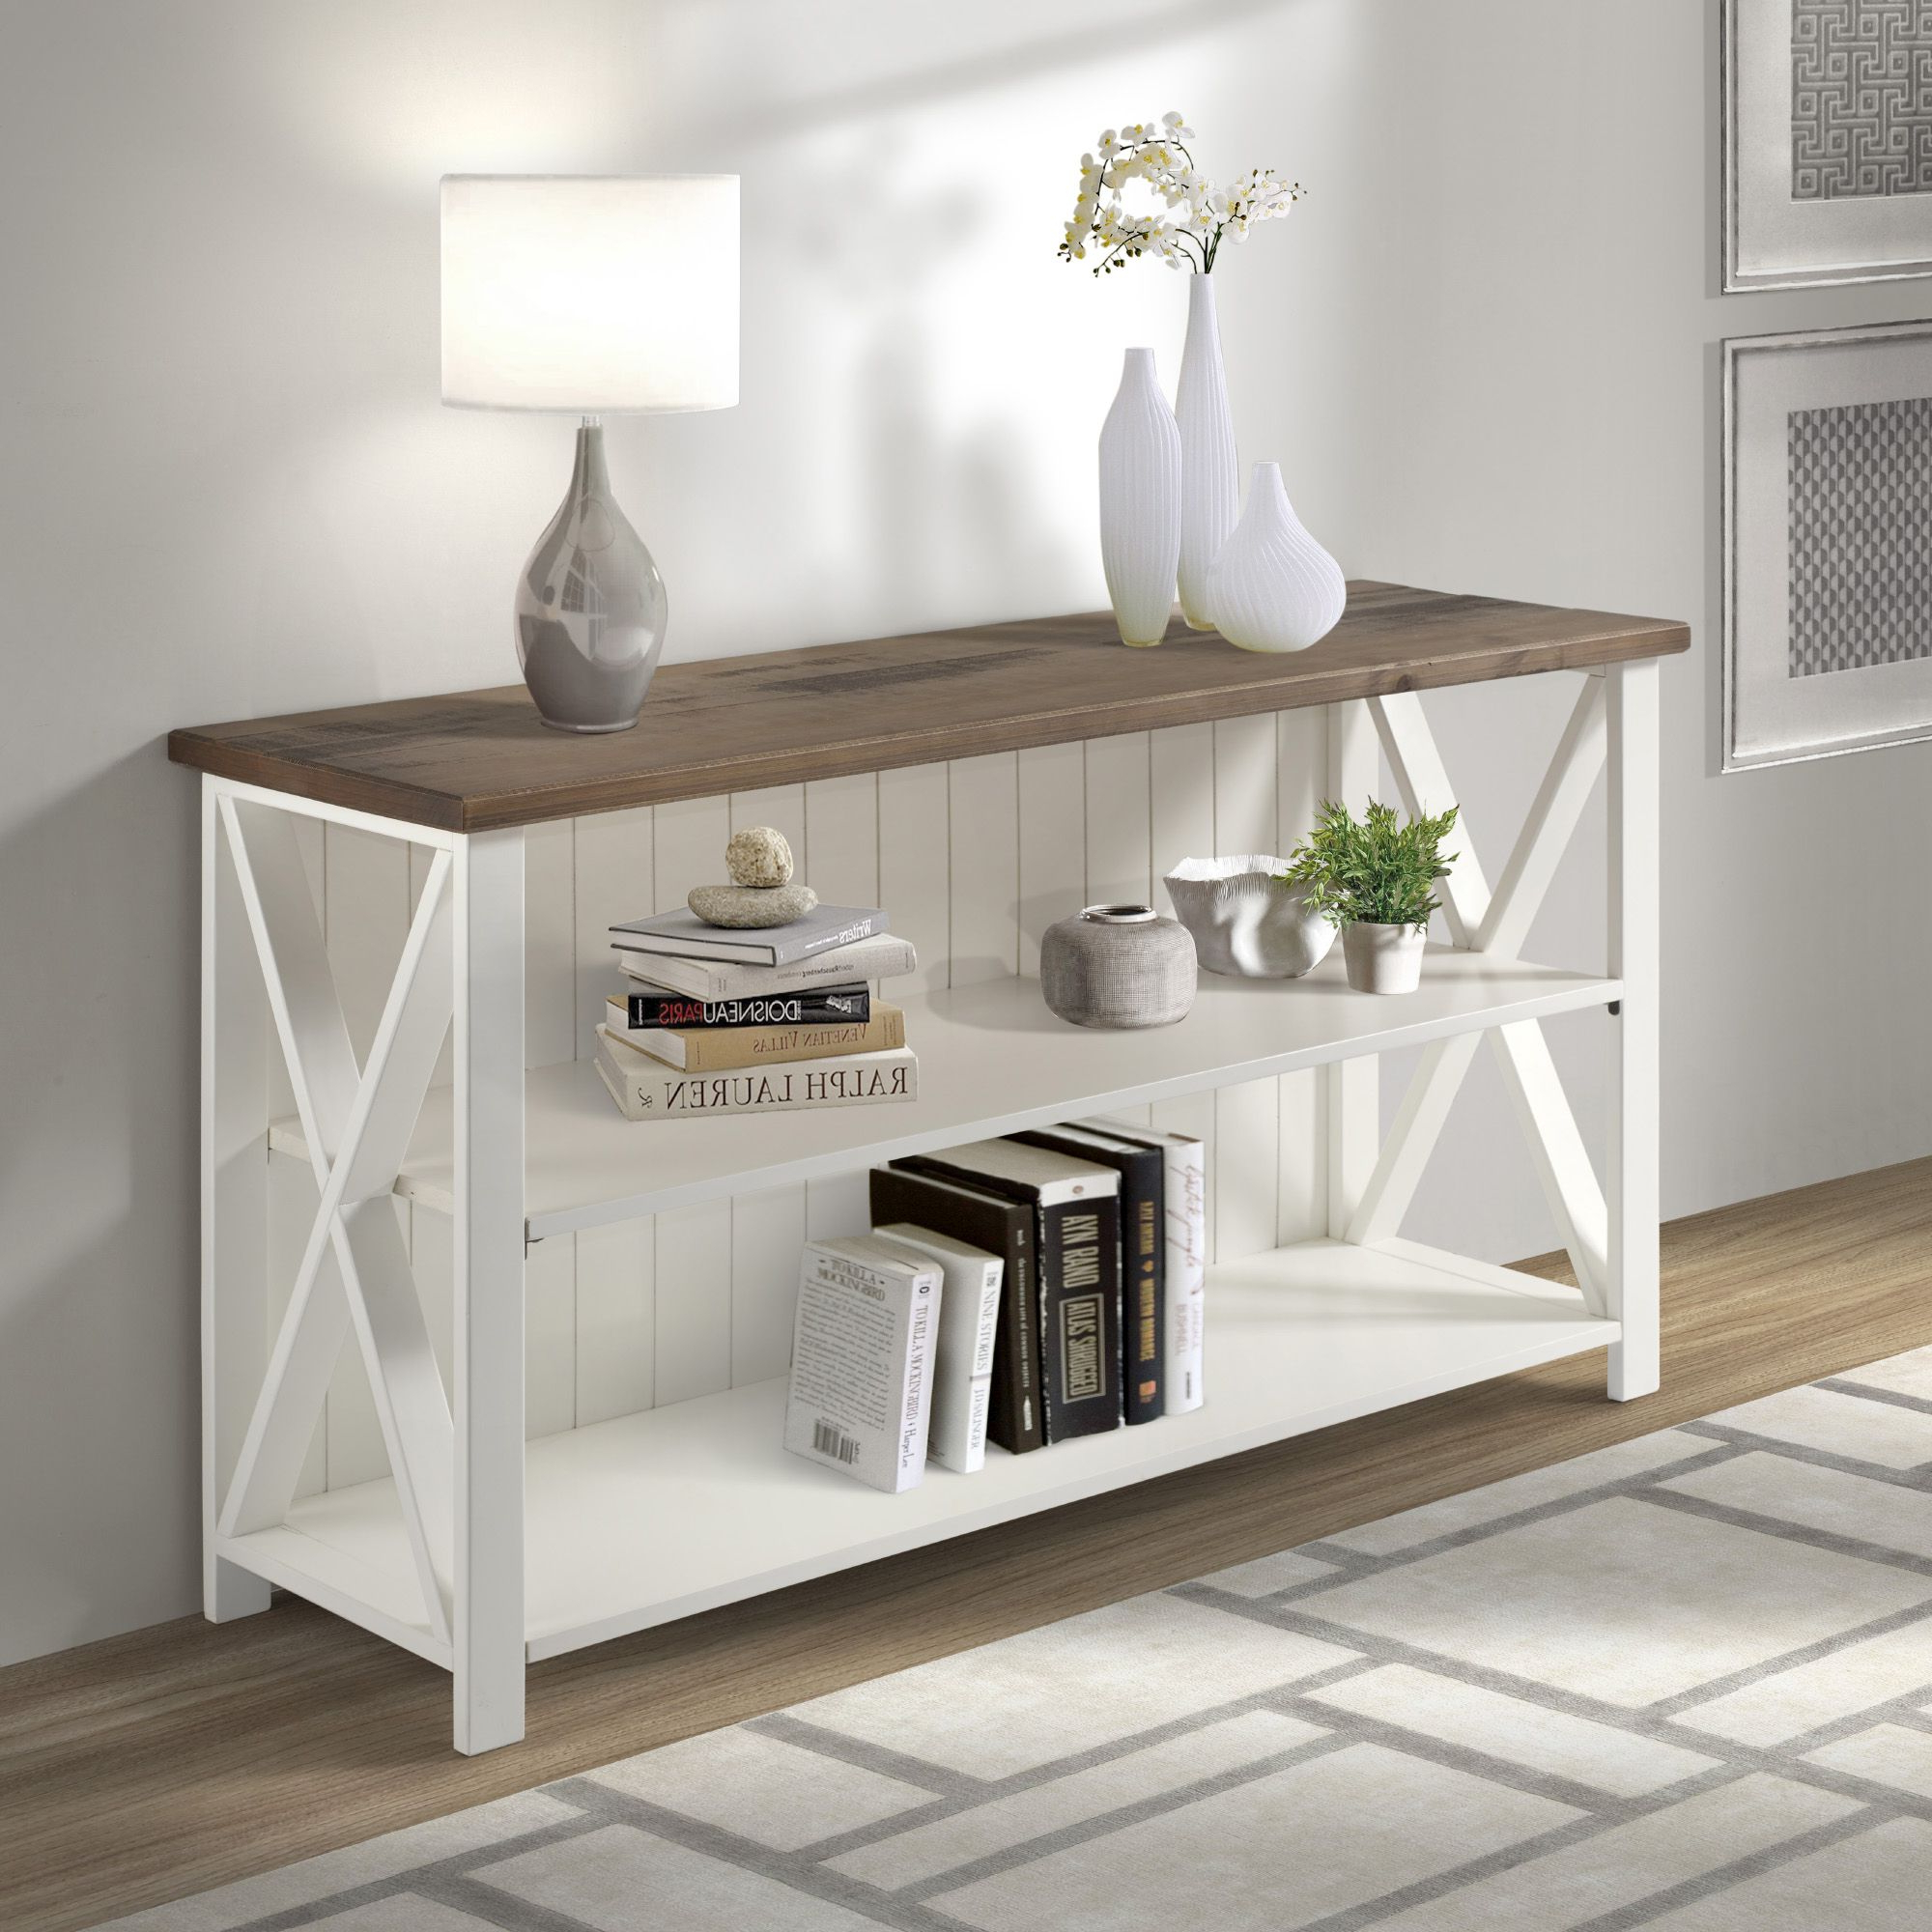 Woven Paths Solid Wood Storage Console Table, White Regarding Woven Paths Farmhouse Sliding Barn Door Tv Stands With Multiple Finishes (View 6 of 14)